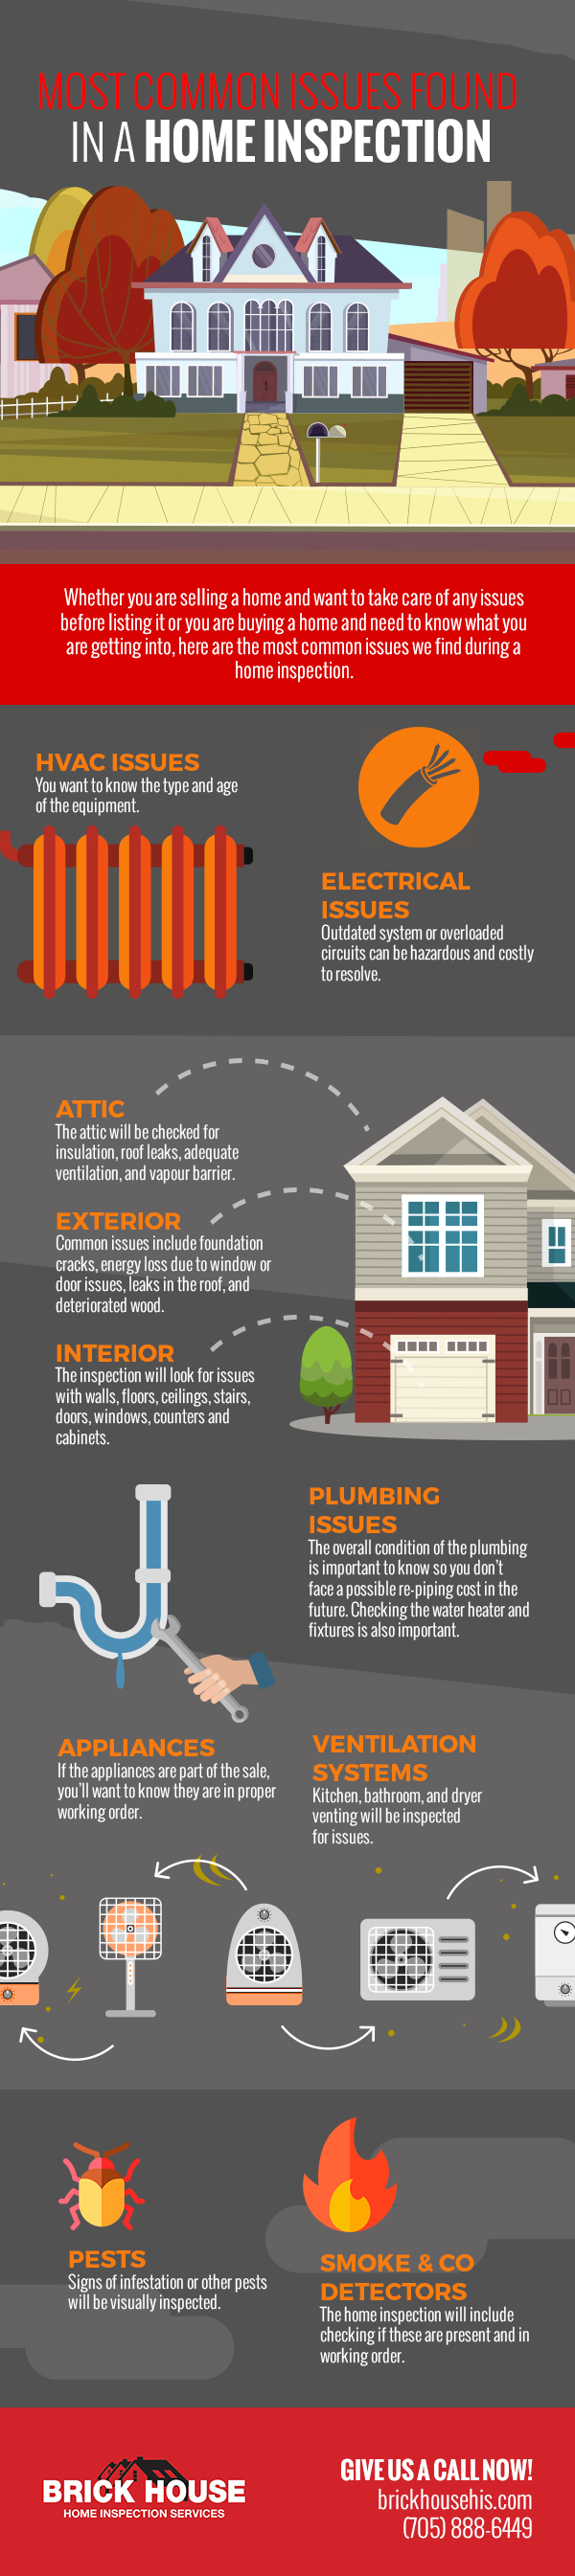 Most Common Issues Found in a Home Inspection [infographic]